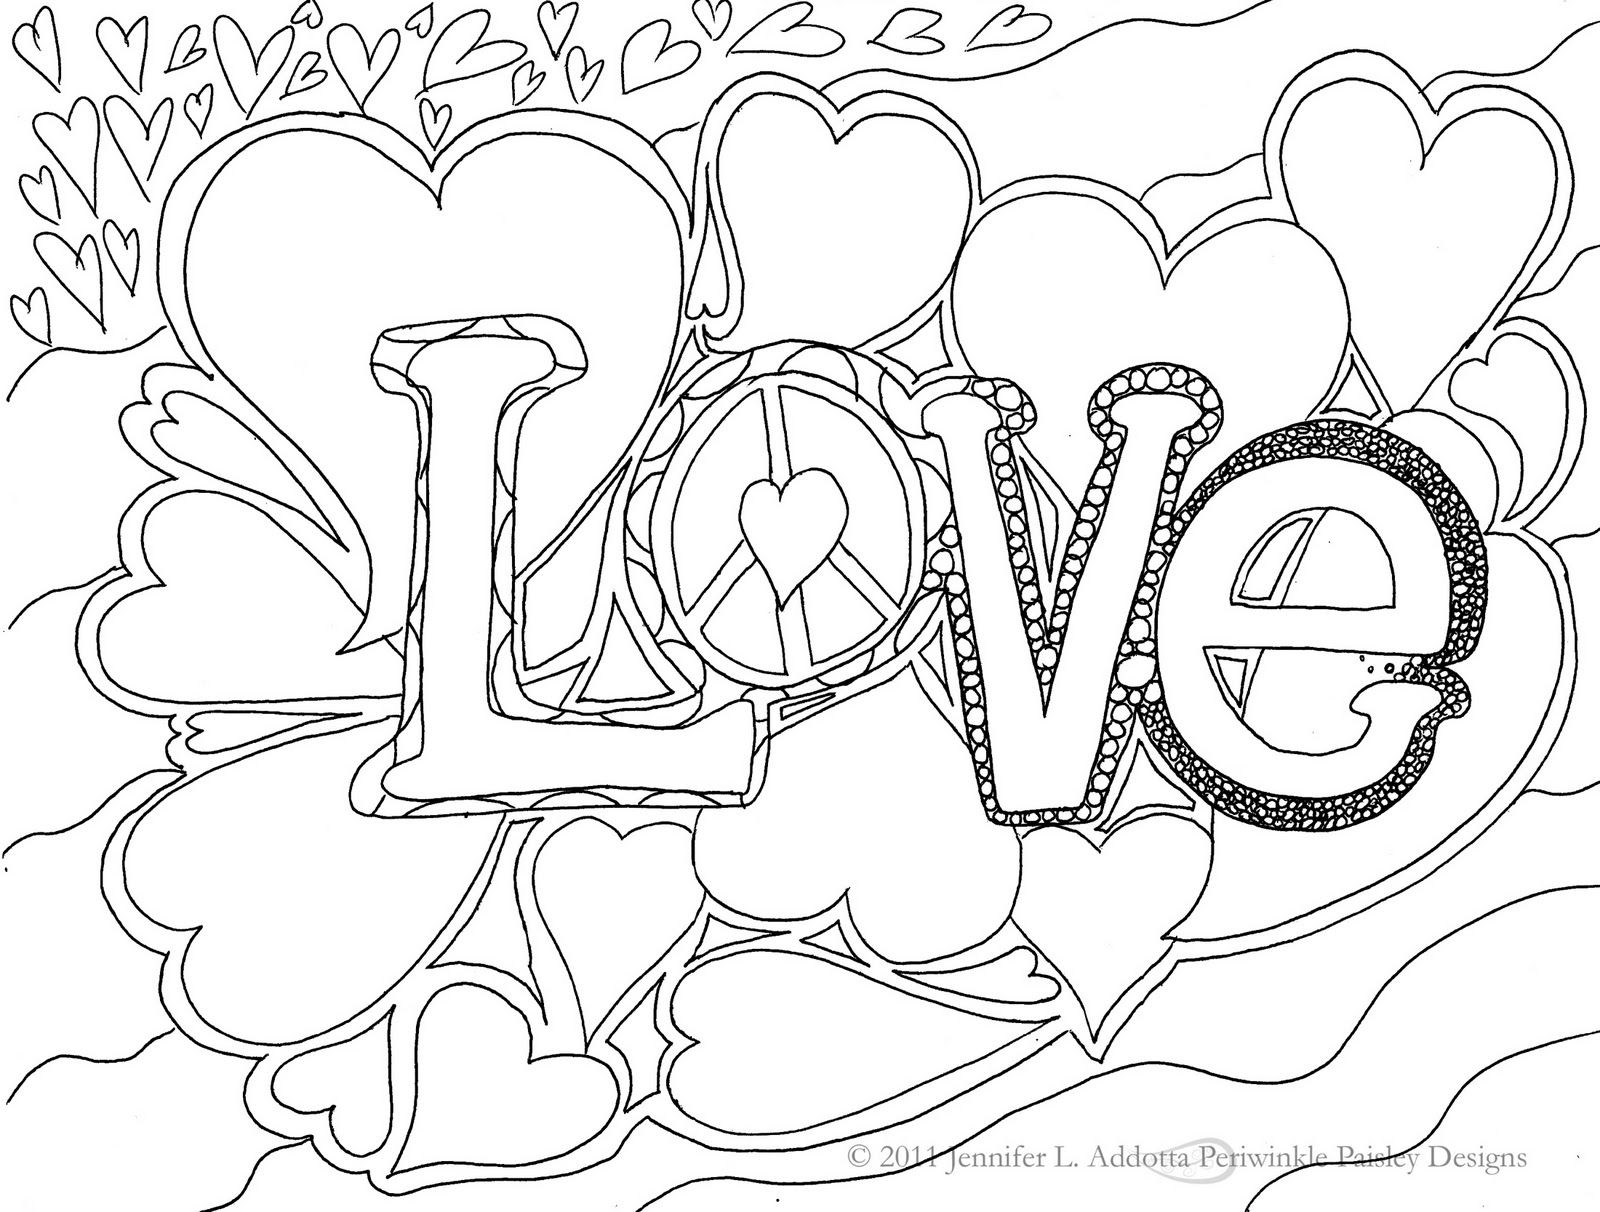 Coloring pages for adults cute - Valentine S Coloring Pages Free Coloring Page For You Or Your Sweetie For Valentine S Day